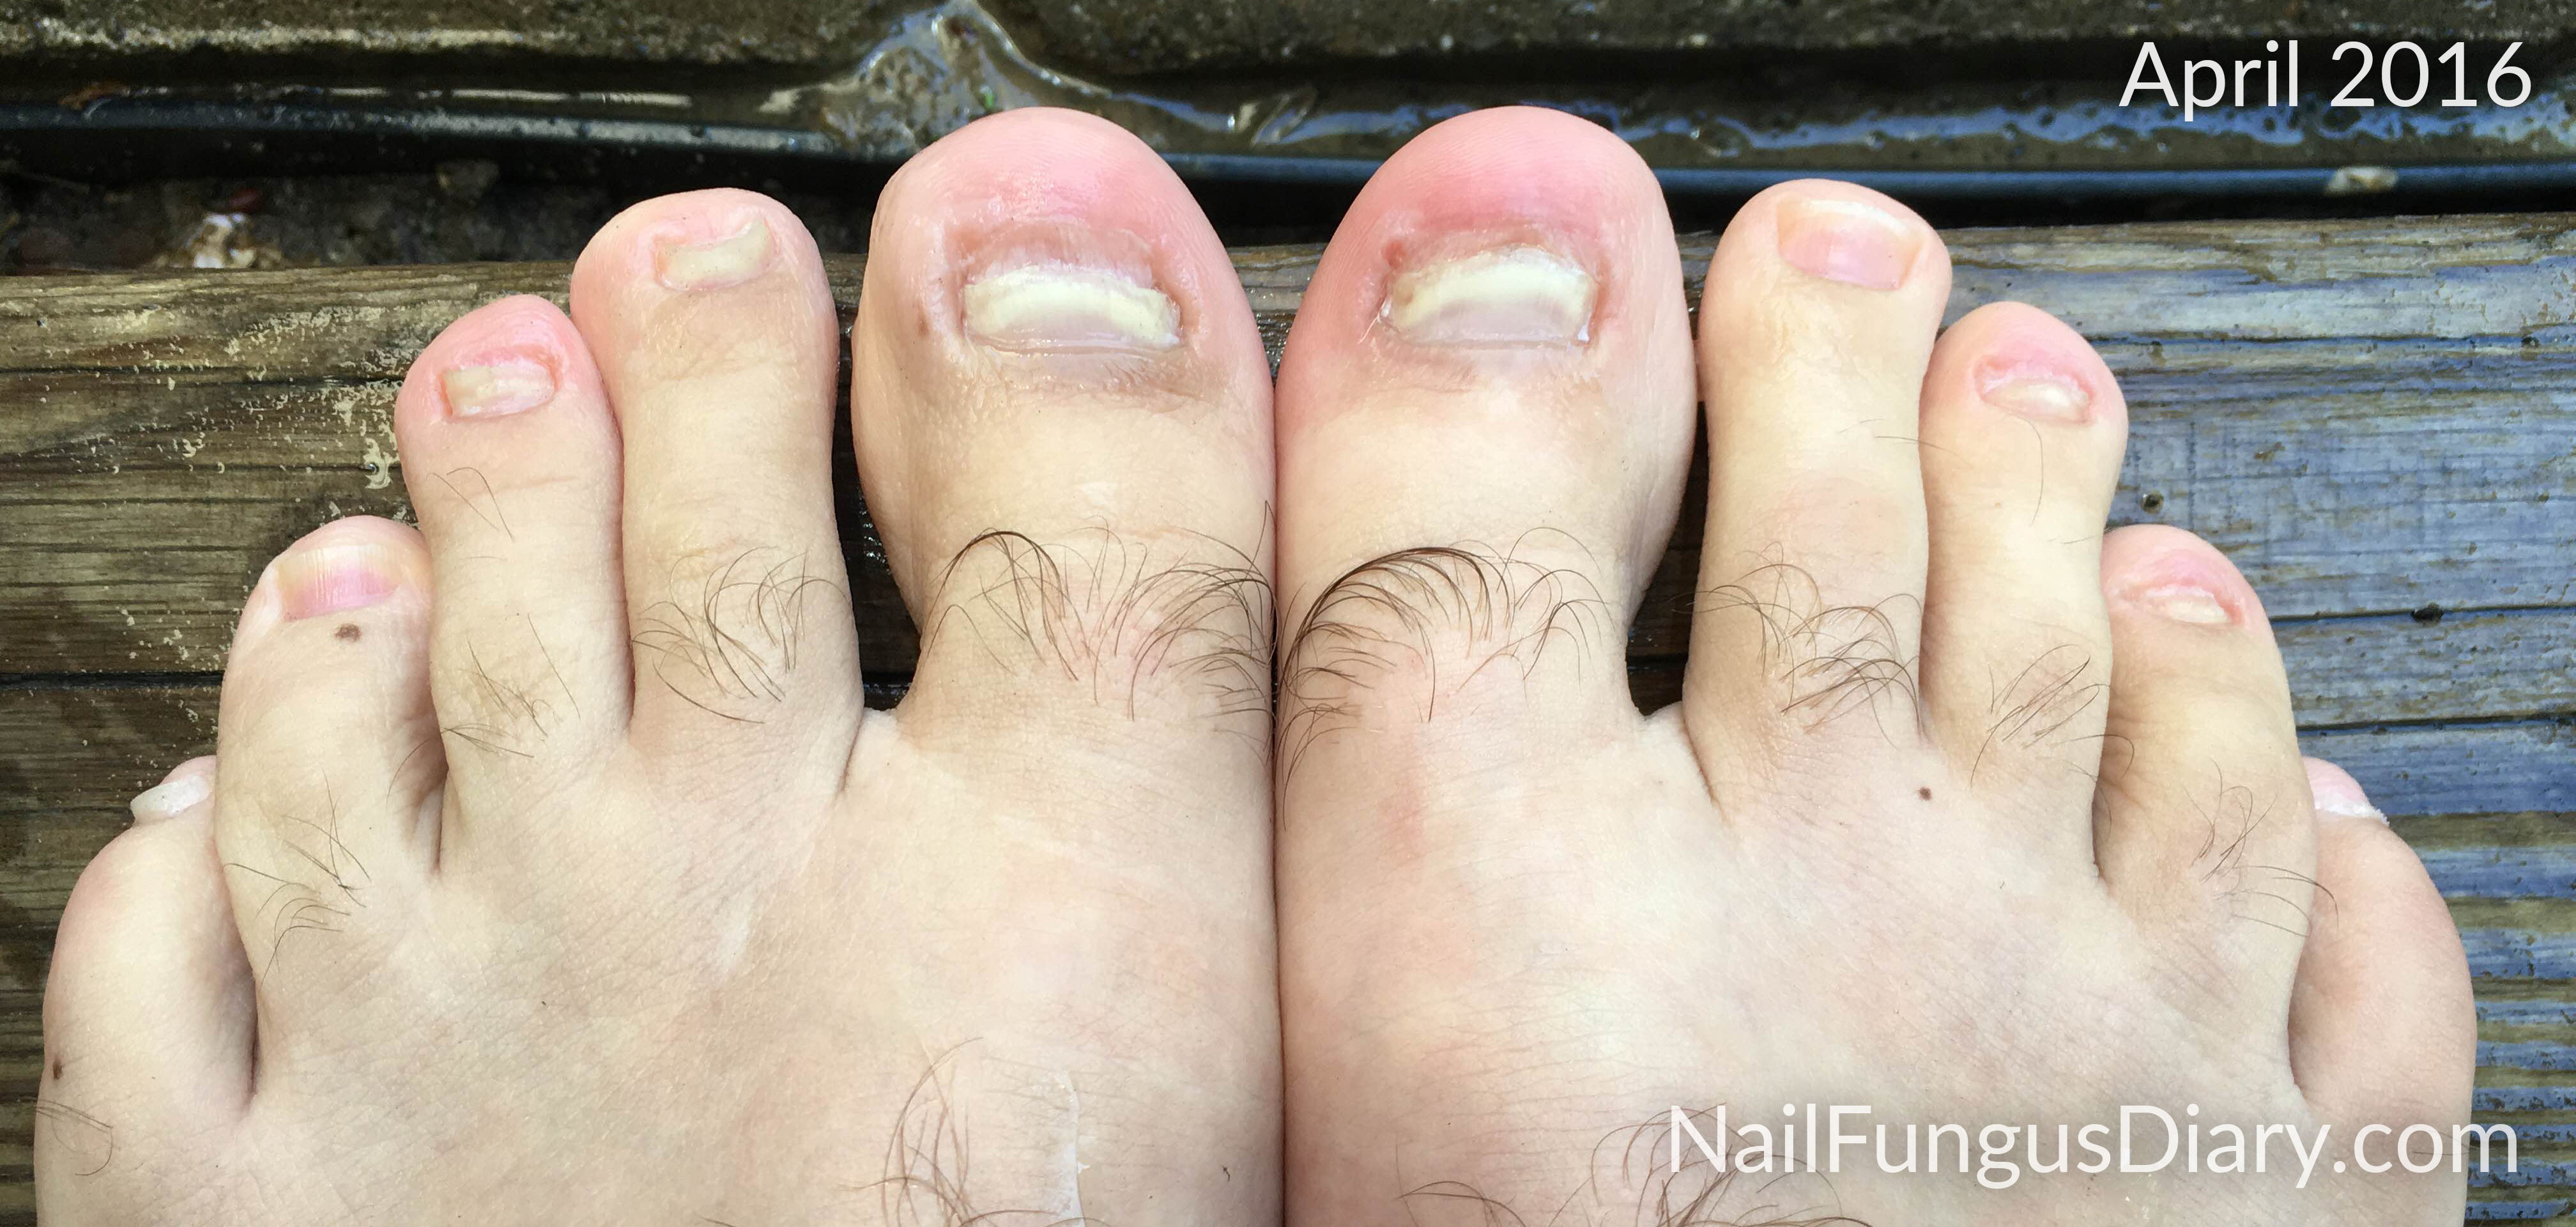 Nail Fungus Update, April 2016 - Nail Fungus Diary